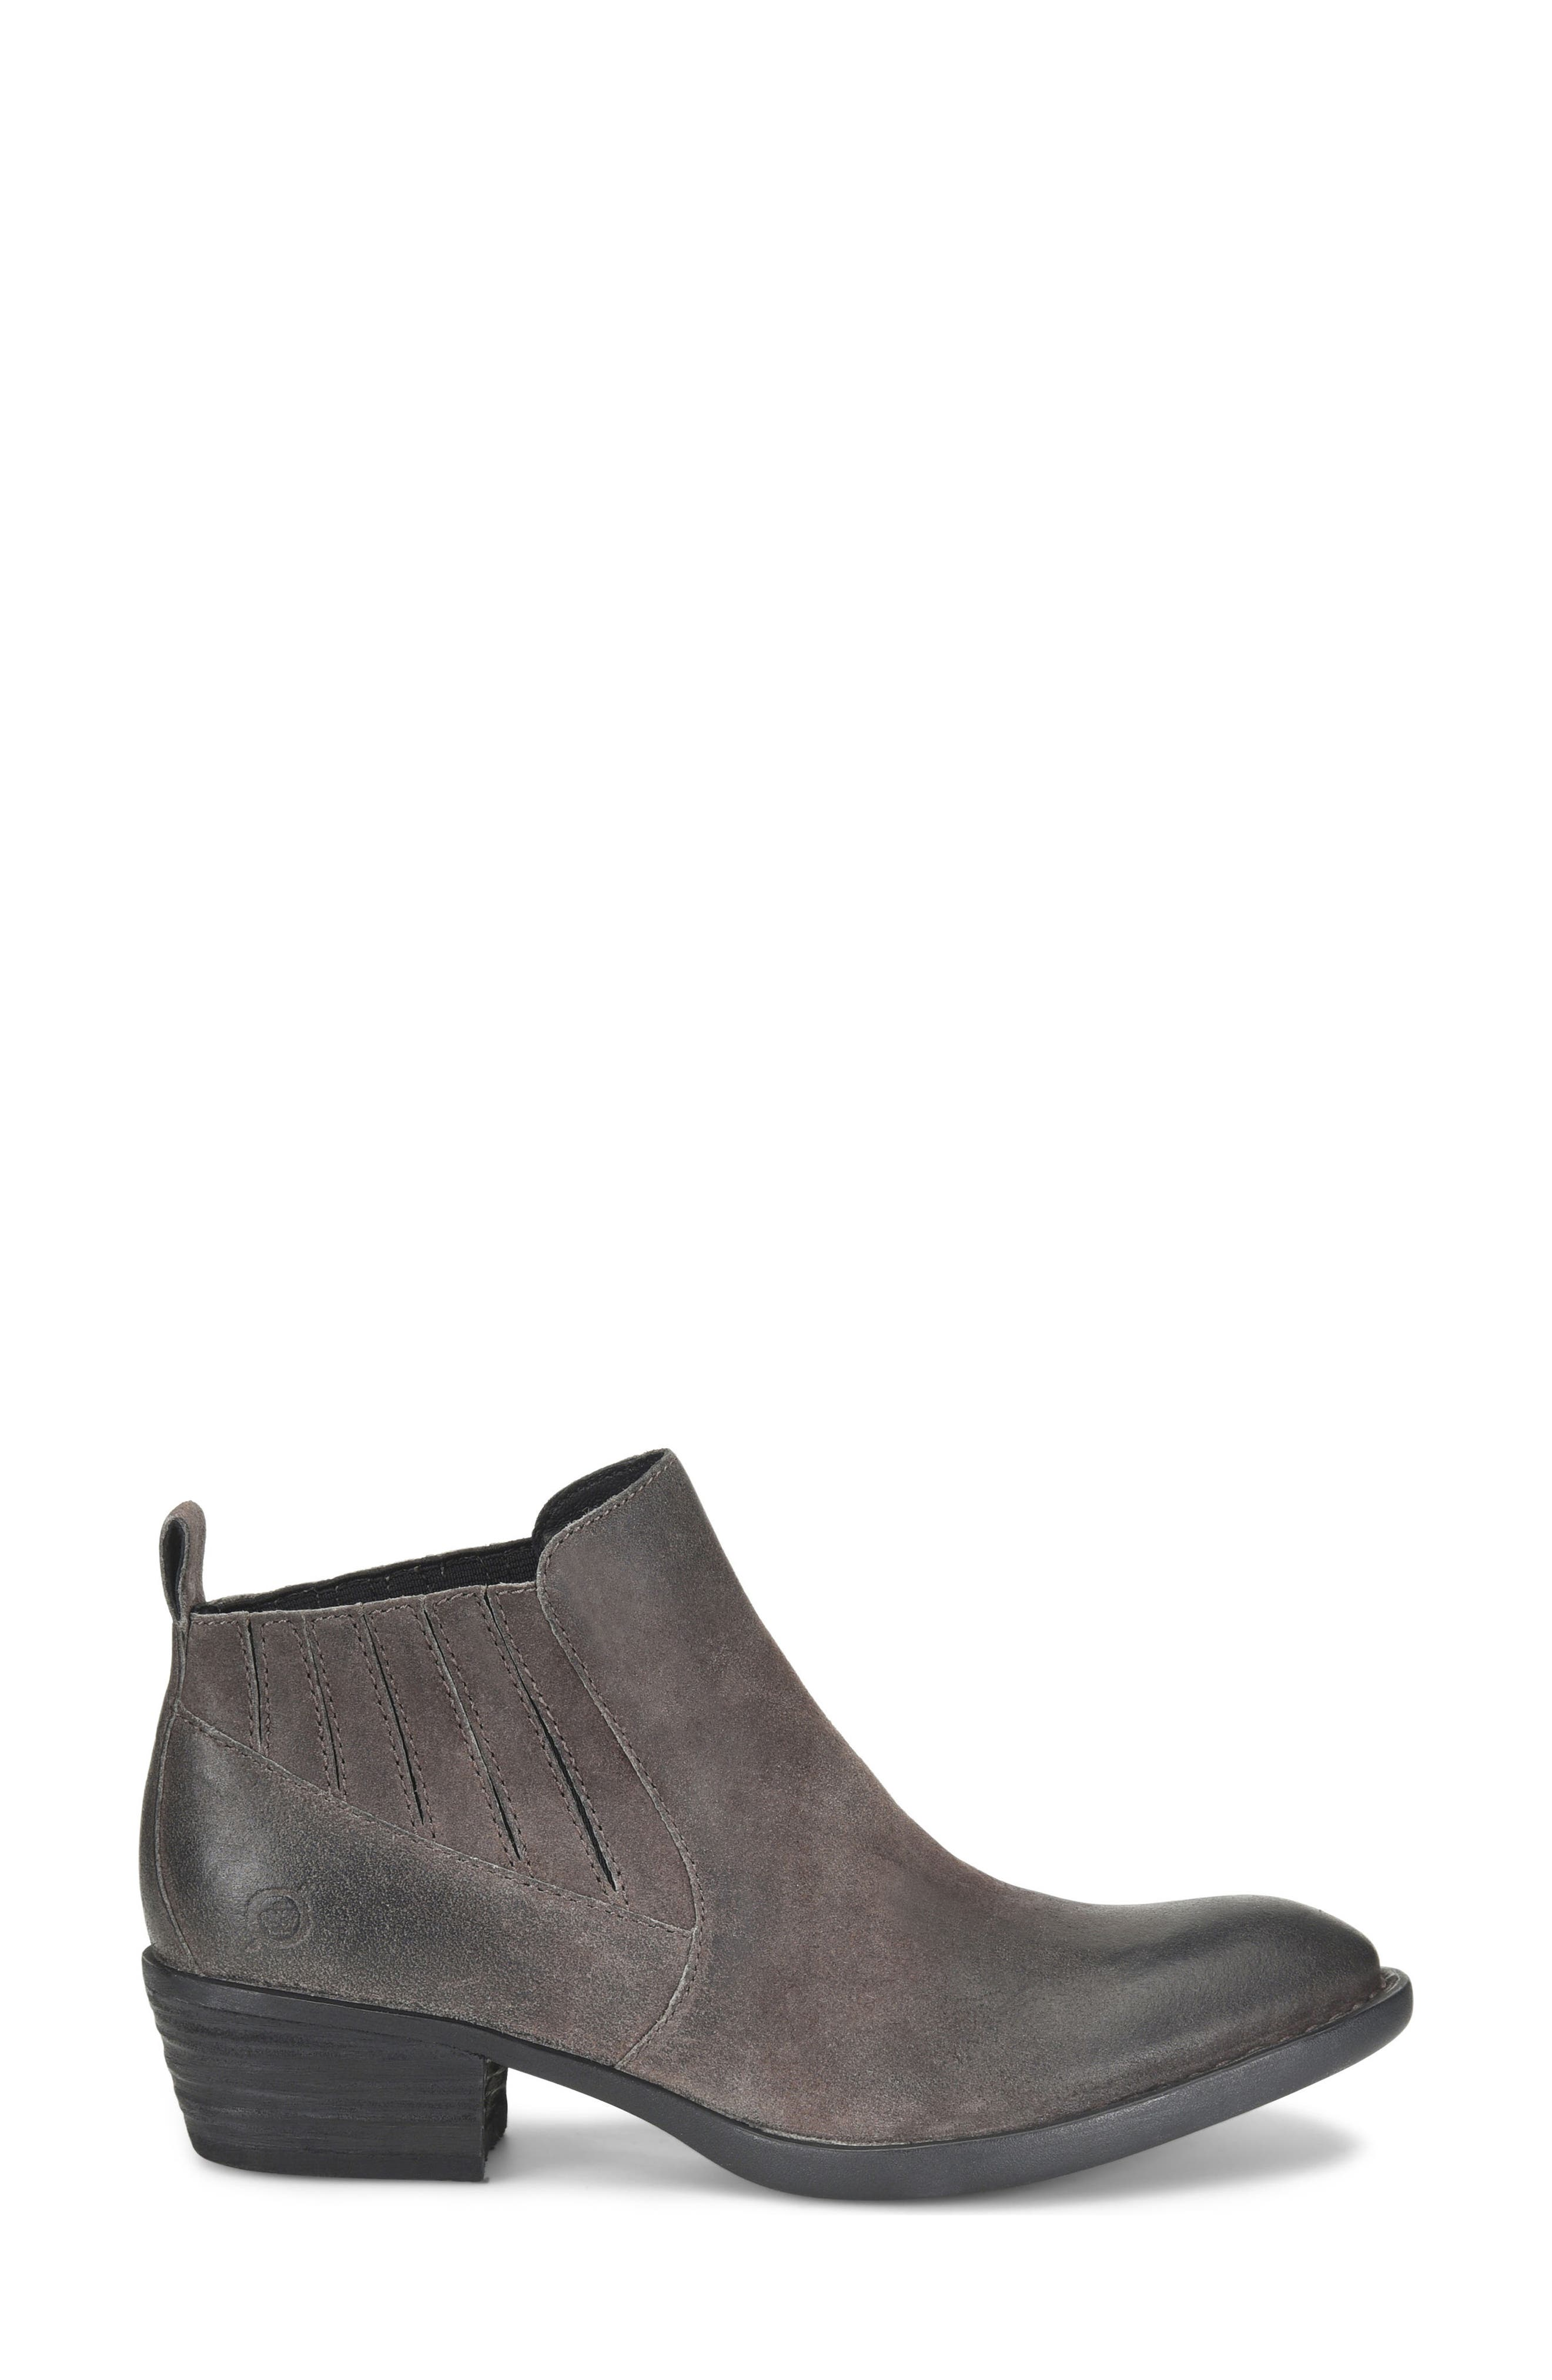 Beebe Bootie,                             Alternate thumbnail 3, color,                             Grey Distressed Leather